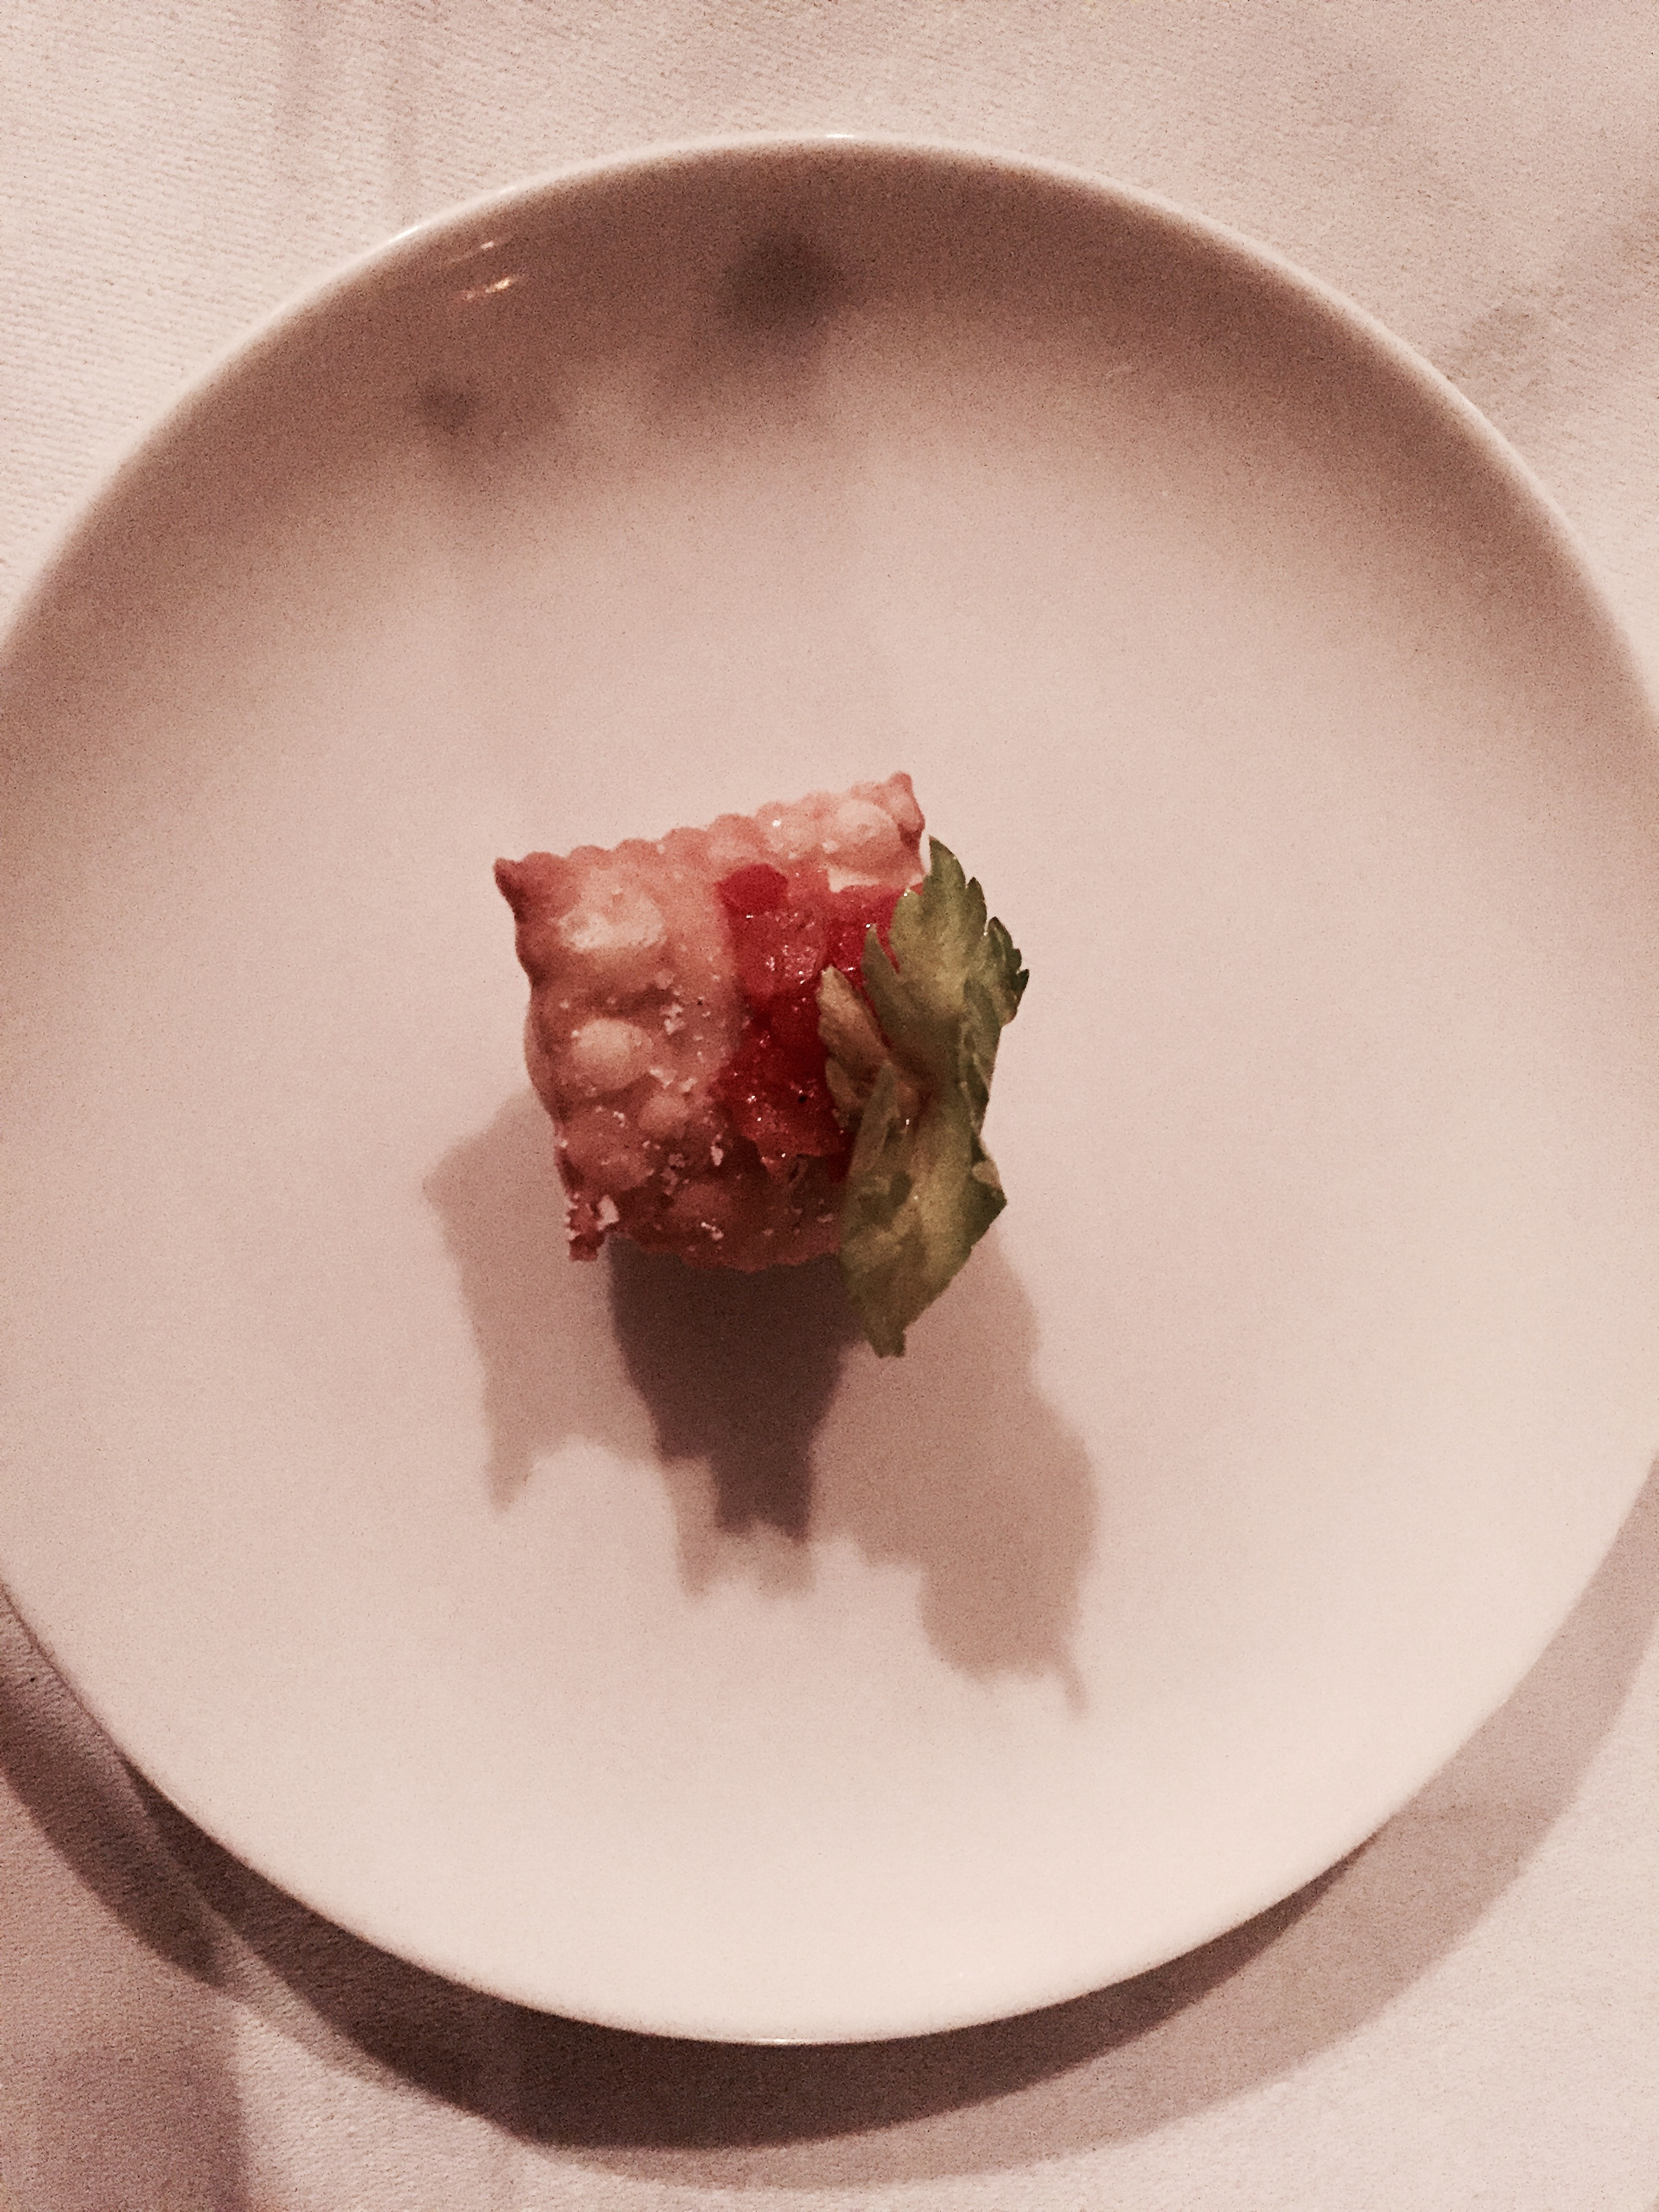 An amuse bouche of puff pastry and fresh vegetables